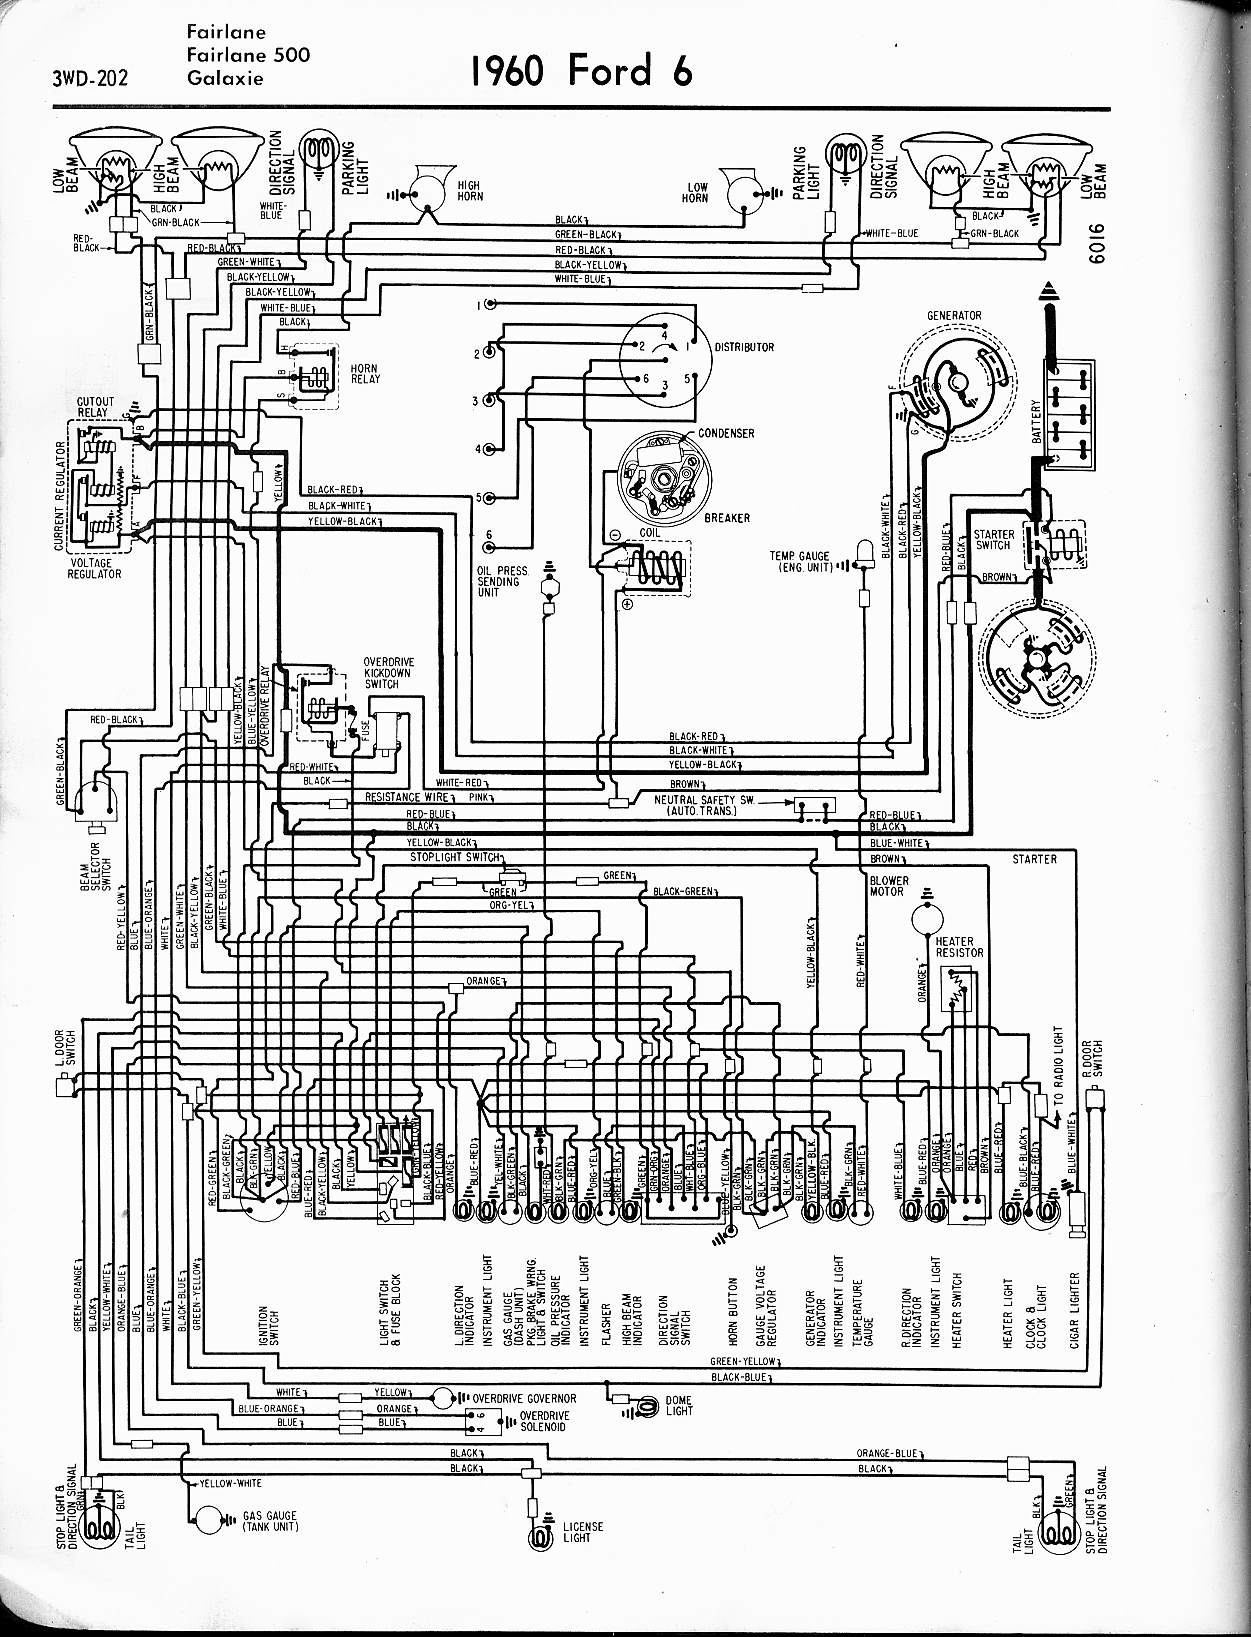 660121 Wiring Help furthermore Schematics i in addition 1278318 Wiring Up 52 Truck Lots Of Questions Thanks additionally 483151866245656160 also Wiring Diagram For 1964 Chevy Truck. on 1964 ford falcon wiring harness